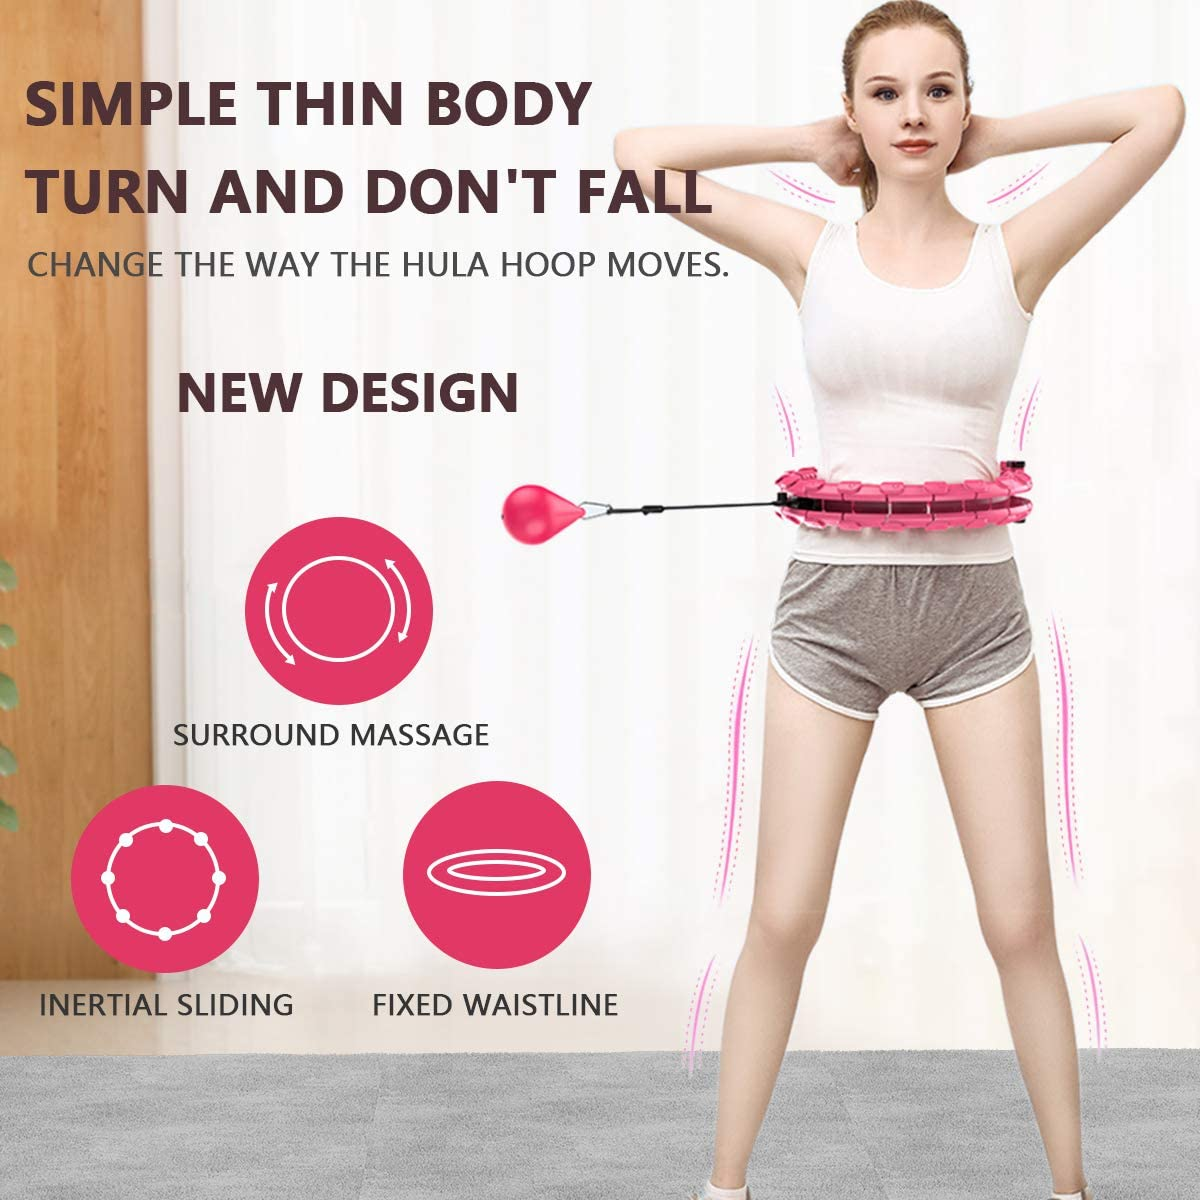 Weighted Hula Hoop Adjustable24 Knots Smart Weighted Hula Hoop Smart Hula Hoop with Massage Nut Hula Hoop Hula Hoop Fitness for Women and Man Exercise for Legs Waist and Hips